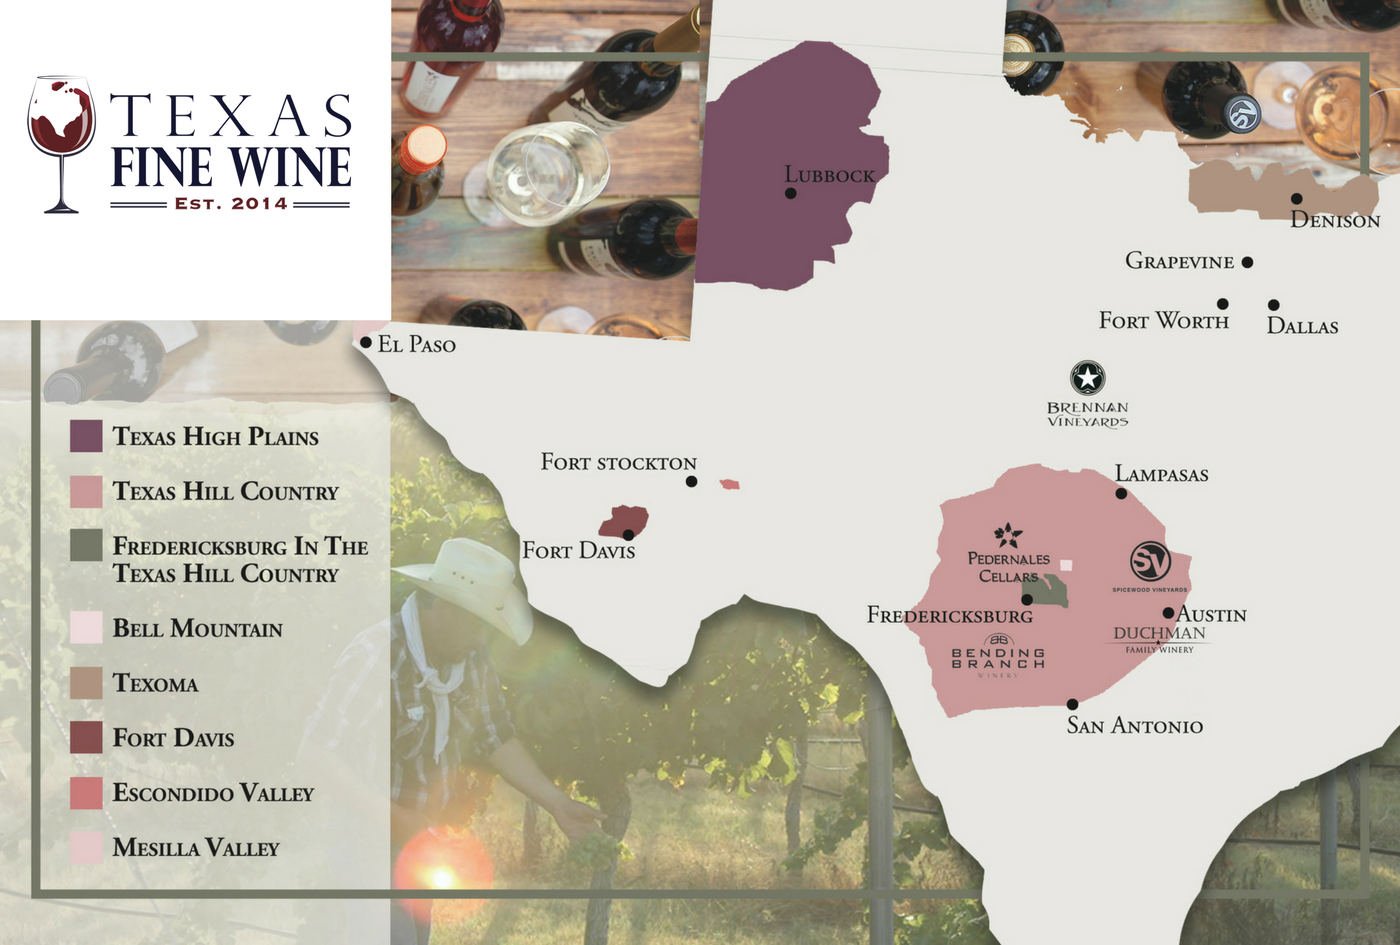 WINE FACTS - Texas Fine Wine